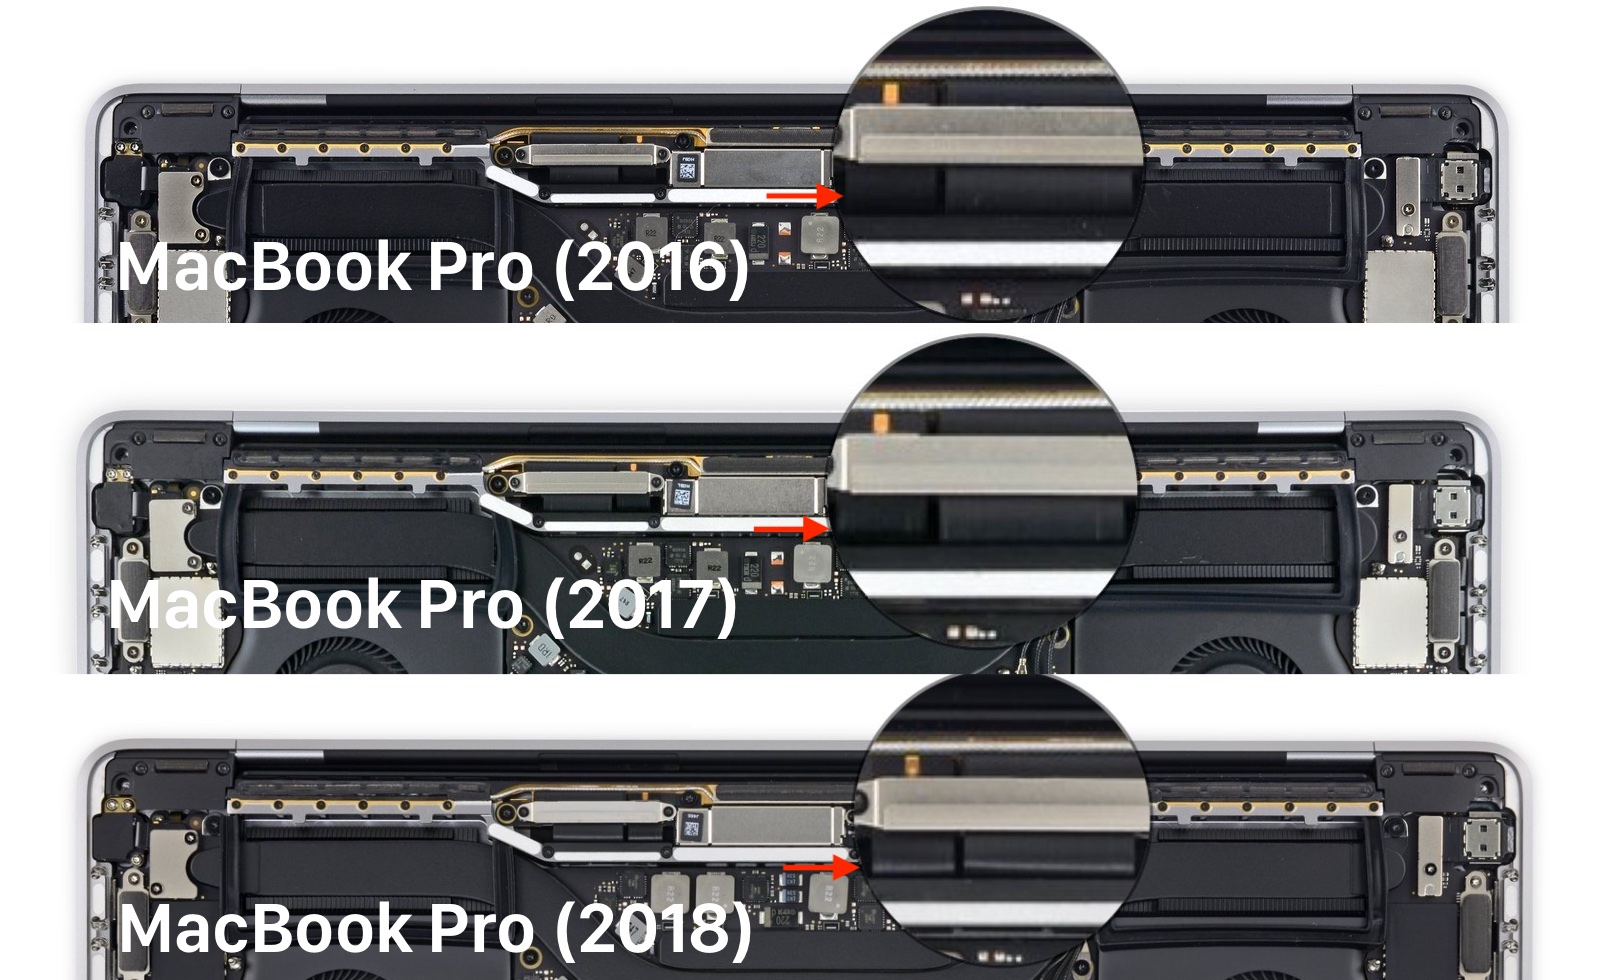 MacBook Pro 2016/2017/2018 Flexgate